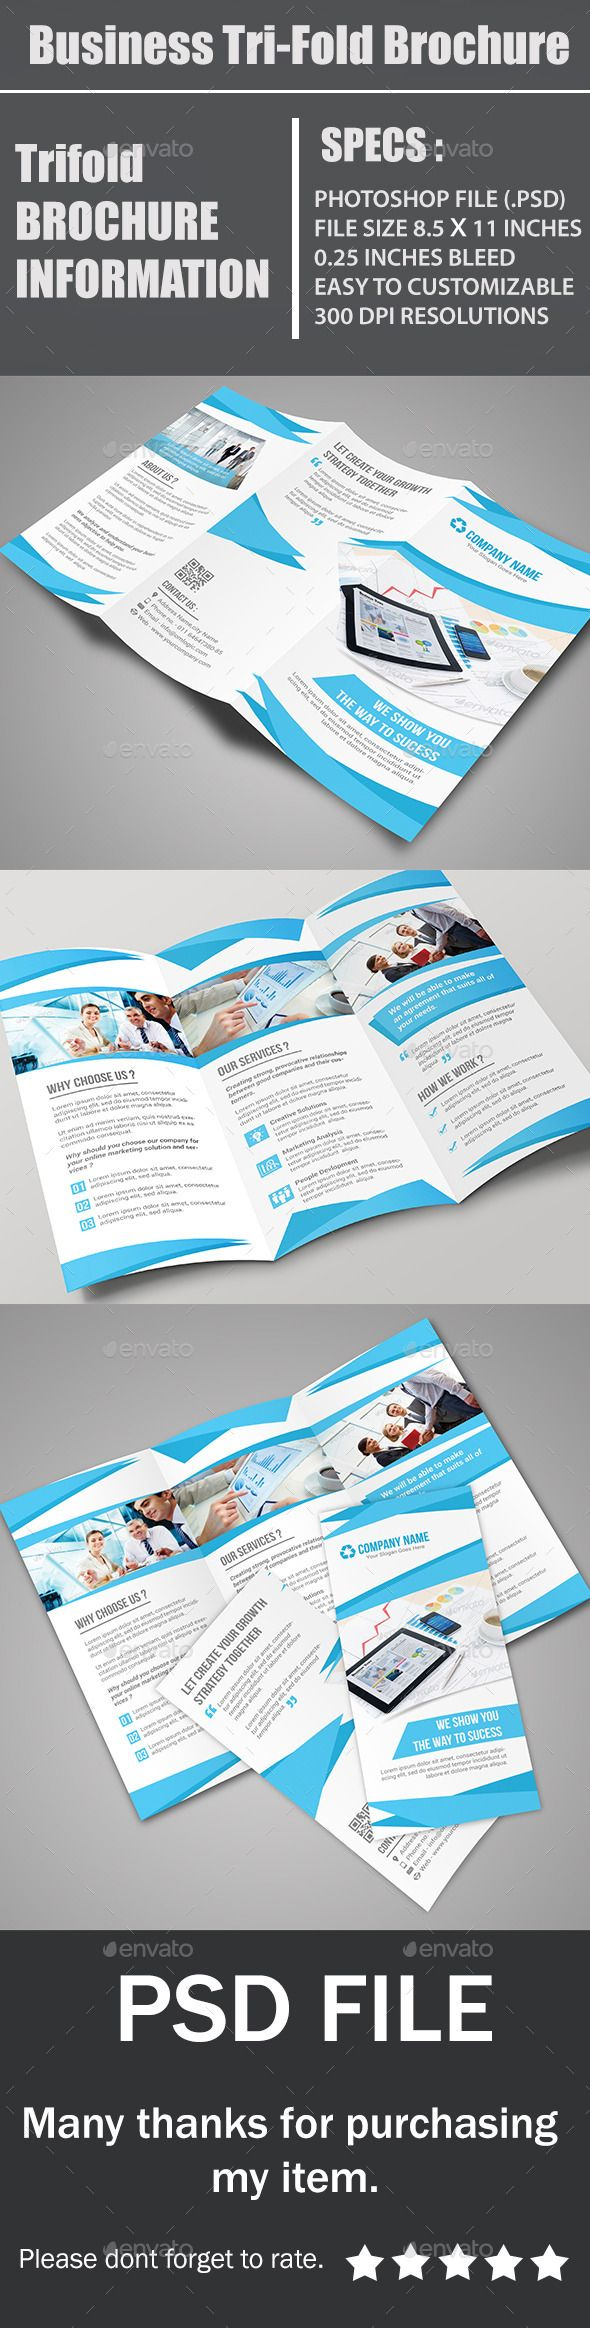 best images about flyers ideas food bank simple business tri fold brochure